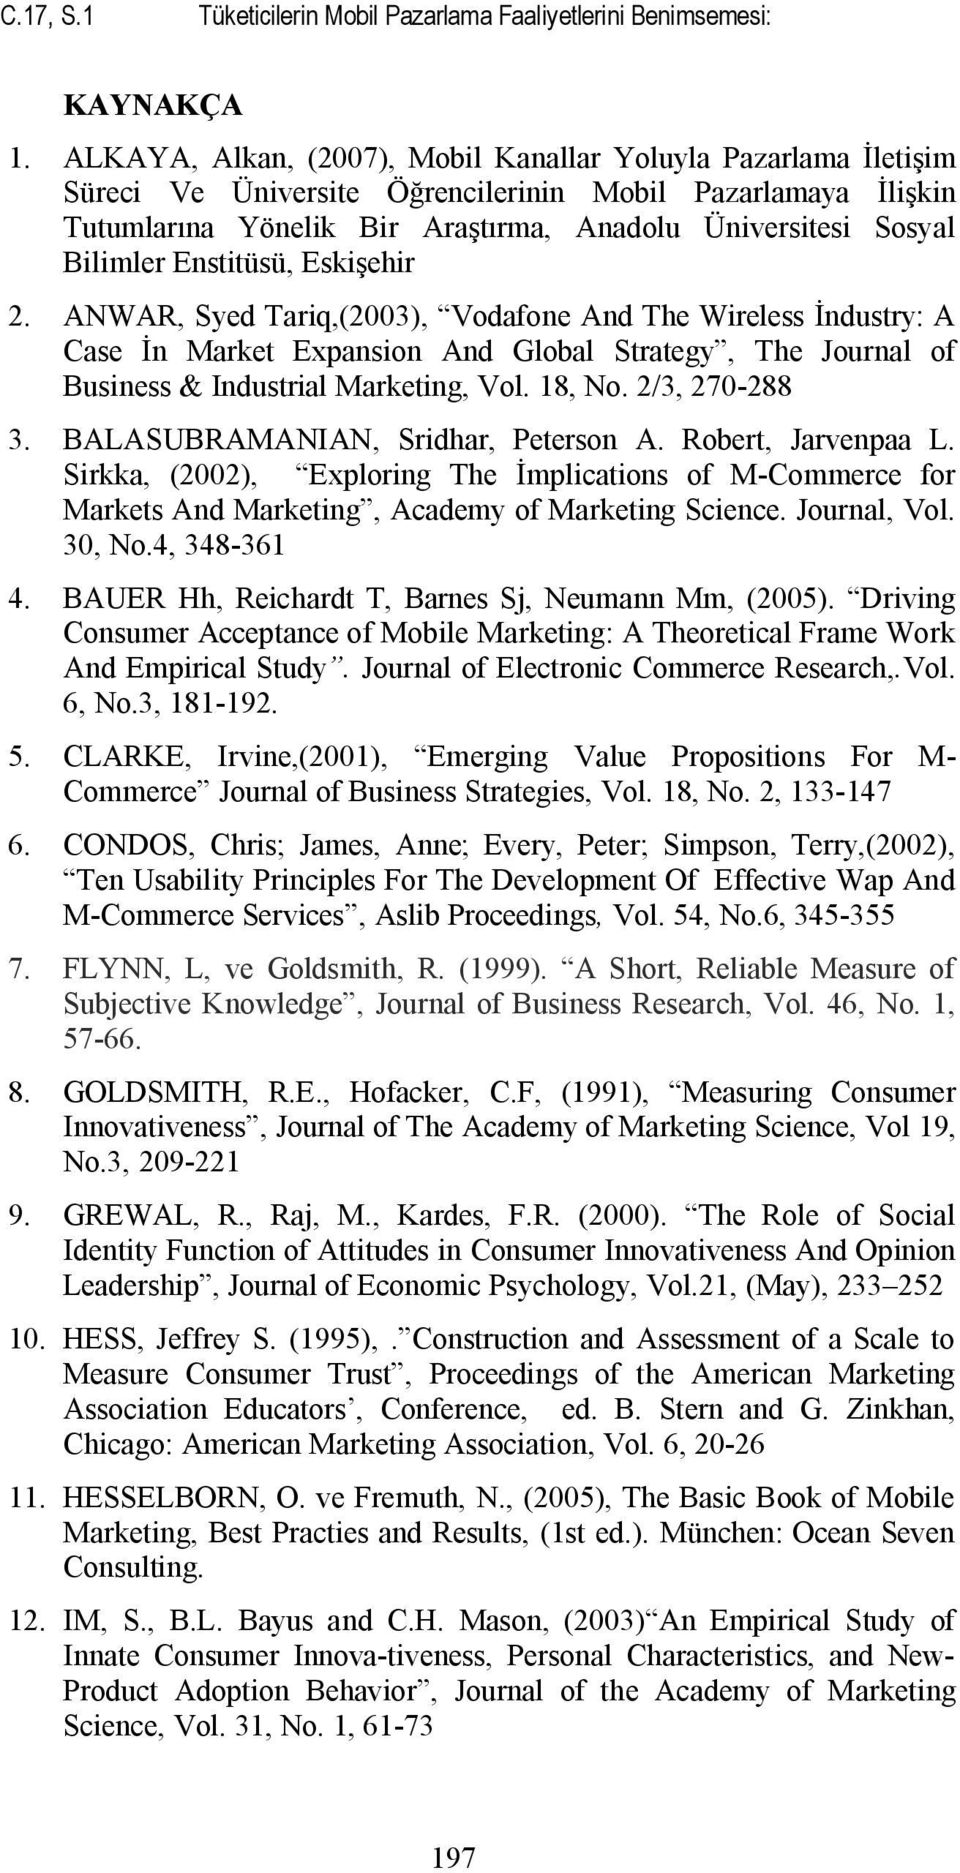 Enstitüsü, Eskişehir 2. ANWAR, Syed Tariq,(2003), Vodafone And The Wireless İndustry: A Case İn Market Expansion And Global Strategy, The Journal of Business & Industrial Marketing, Vol. 18, No.